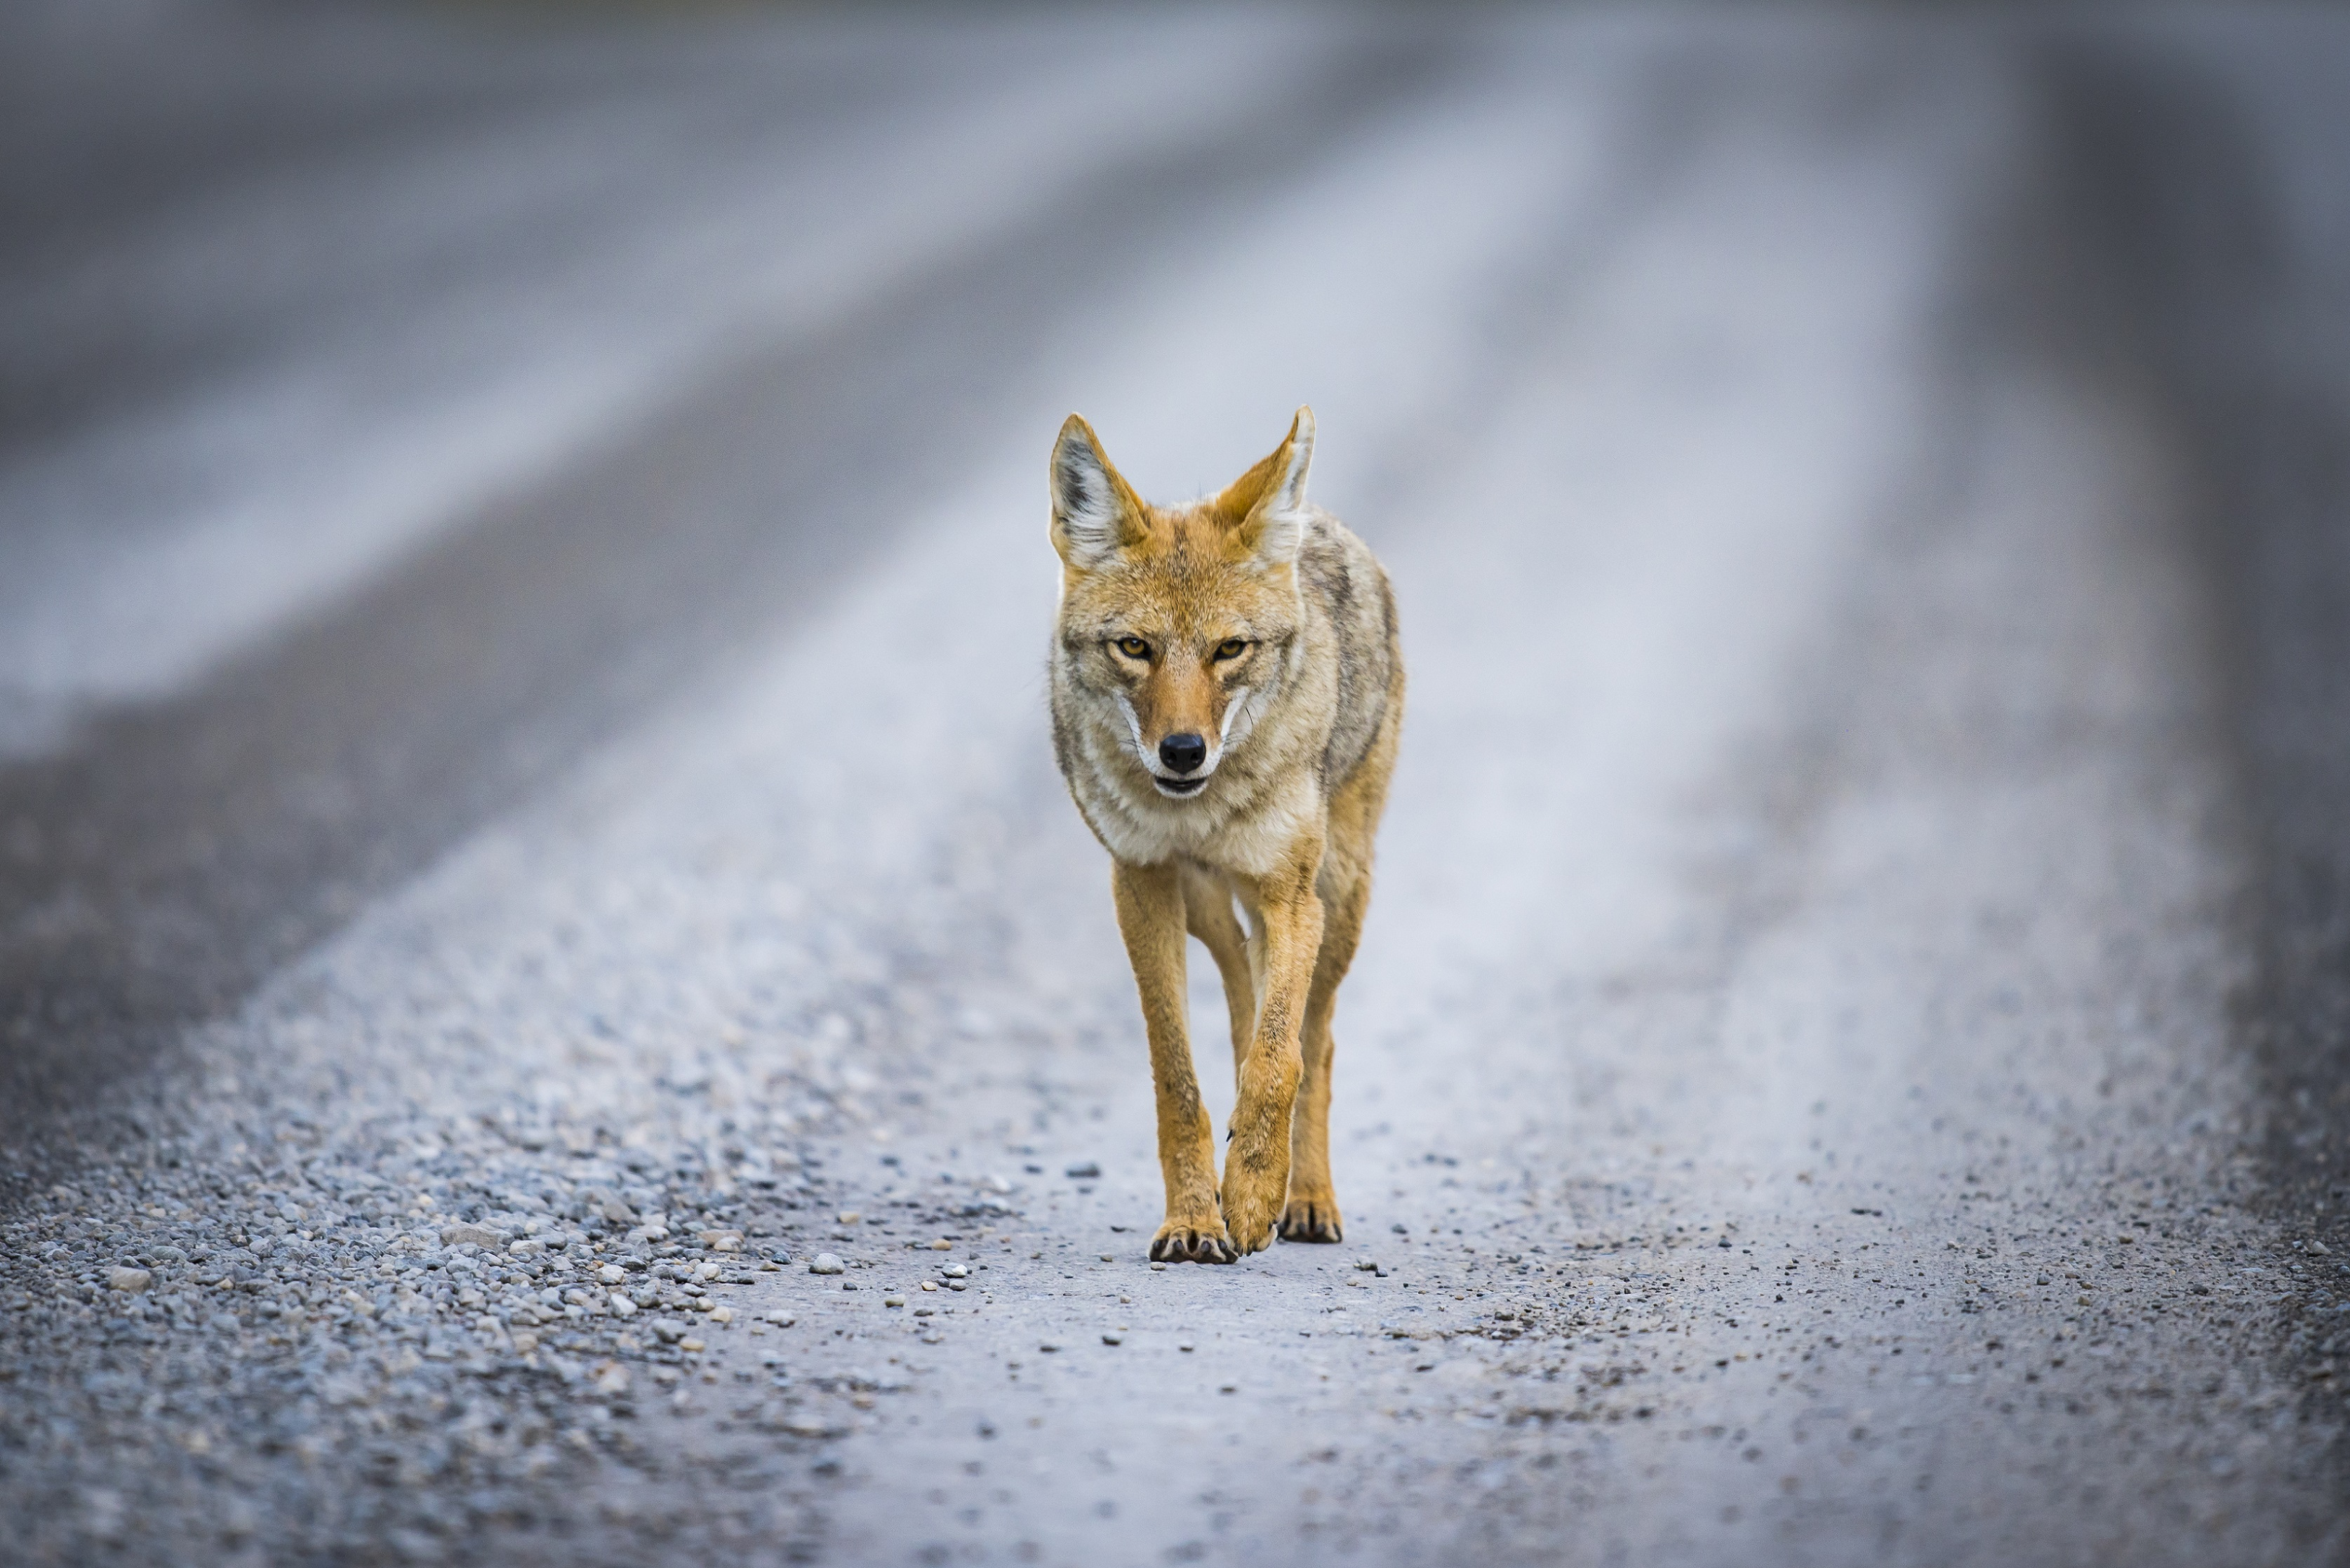 North Line COYOTE (coyote on road pictured)